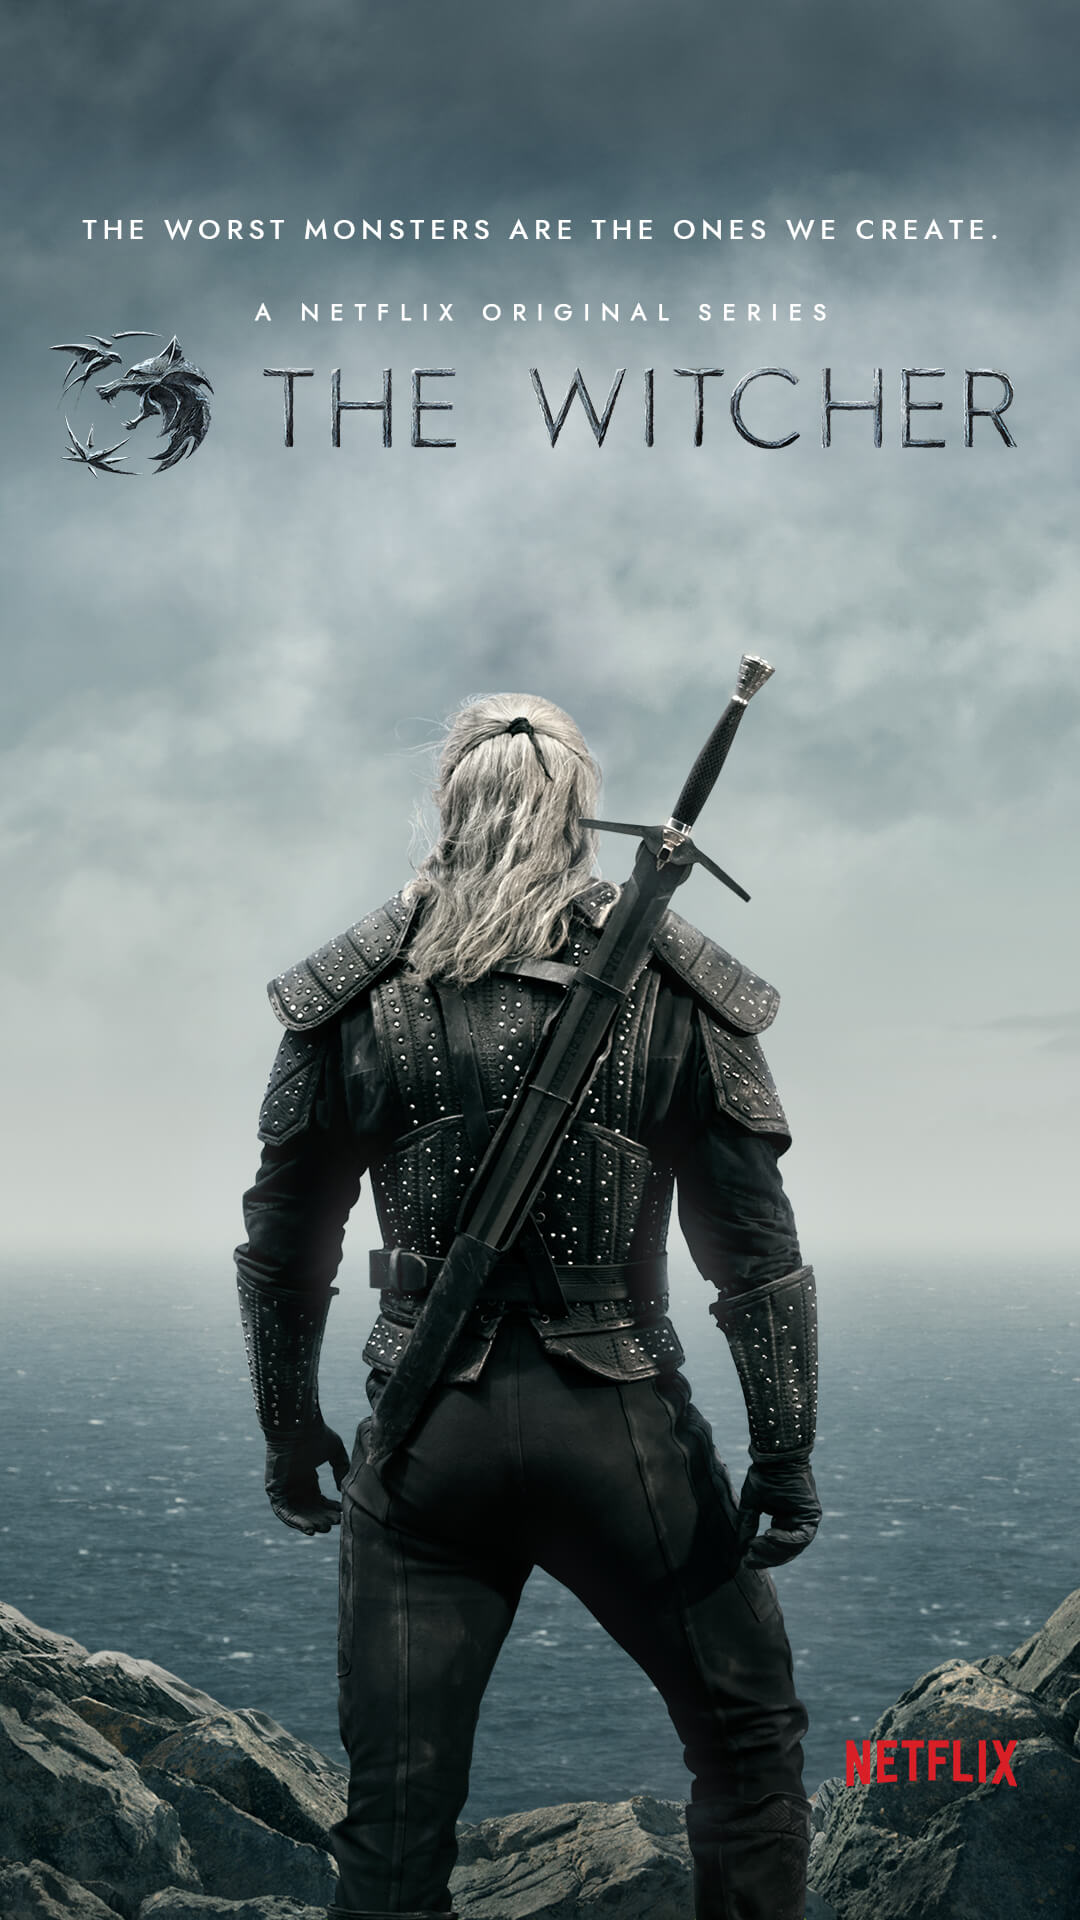 The Witcher Season 1 Poster